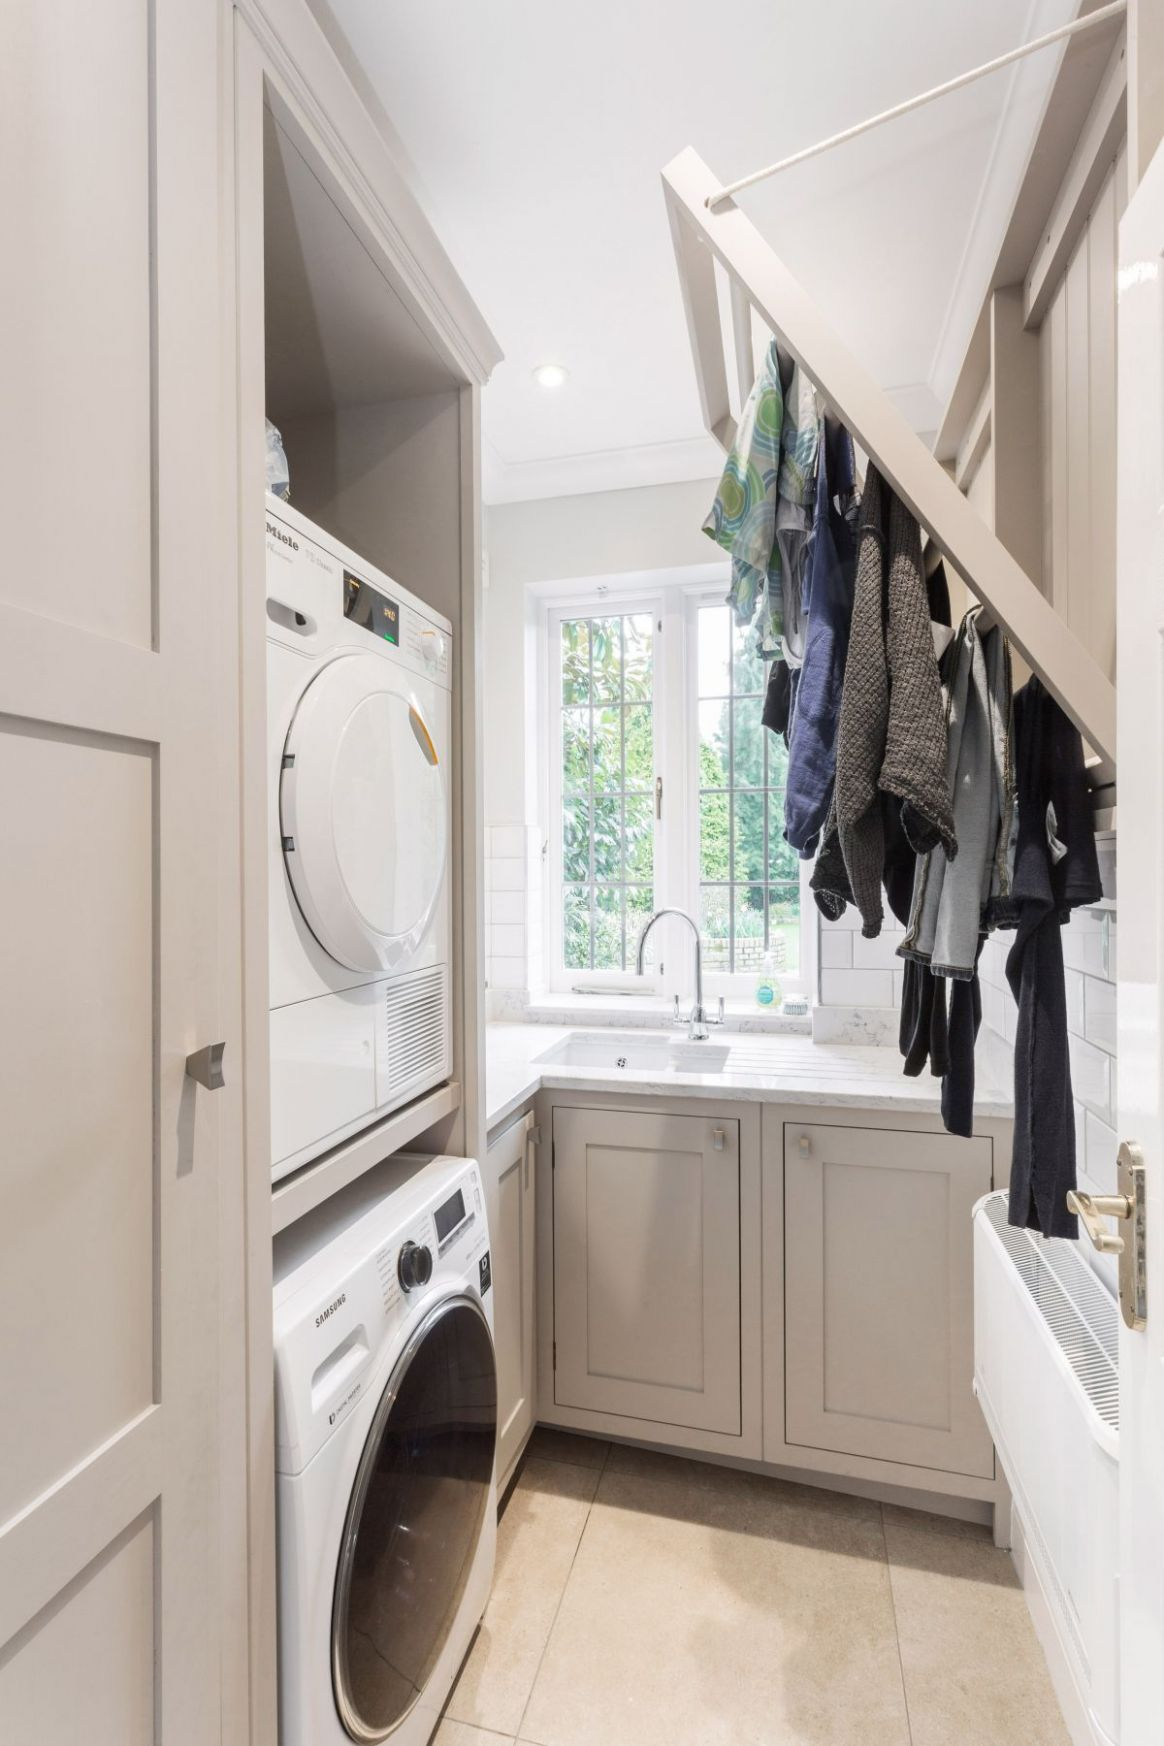 Utility room ideas: 9 ways to make the most of your space | Real ..